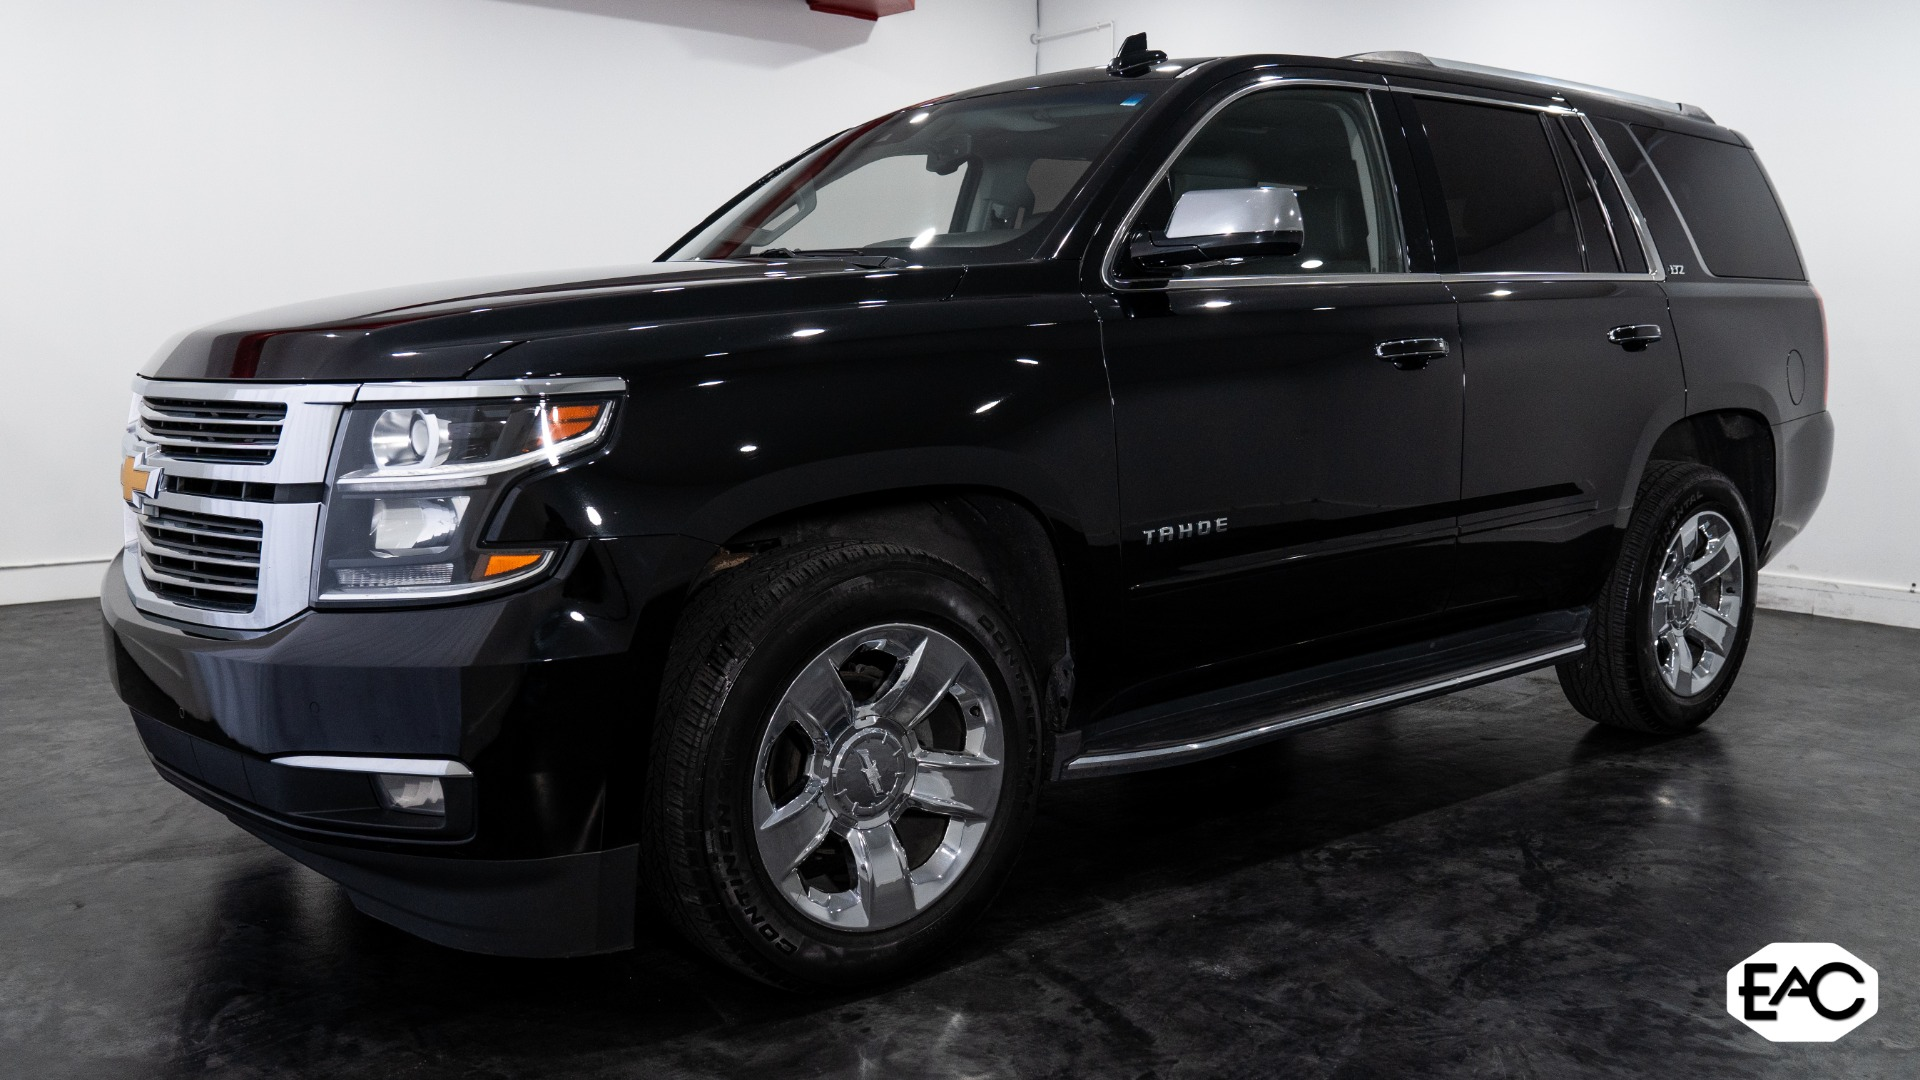 Used 2016 Chevrolet Tahoe LTZ for sale Sold at Empire Auto Collection in Warren MI 48091 1